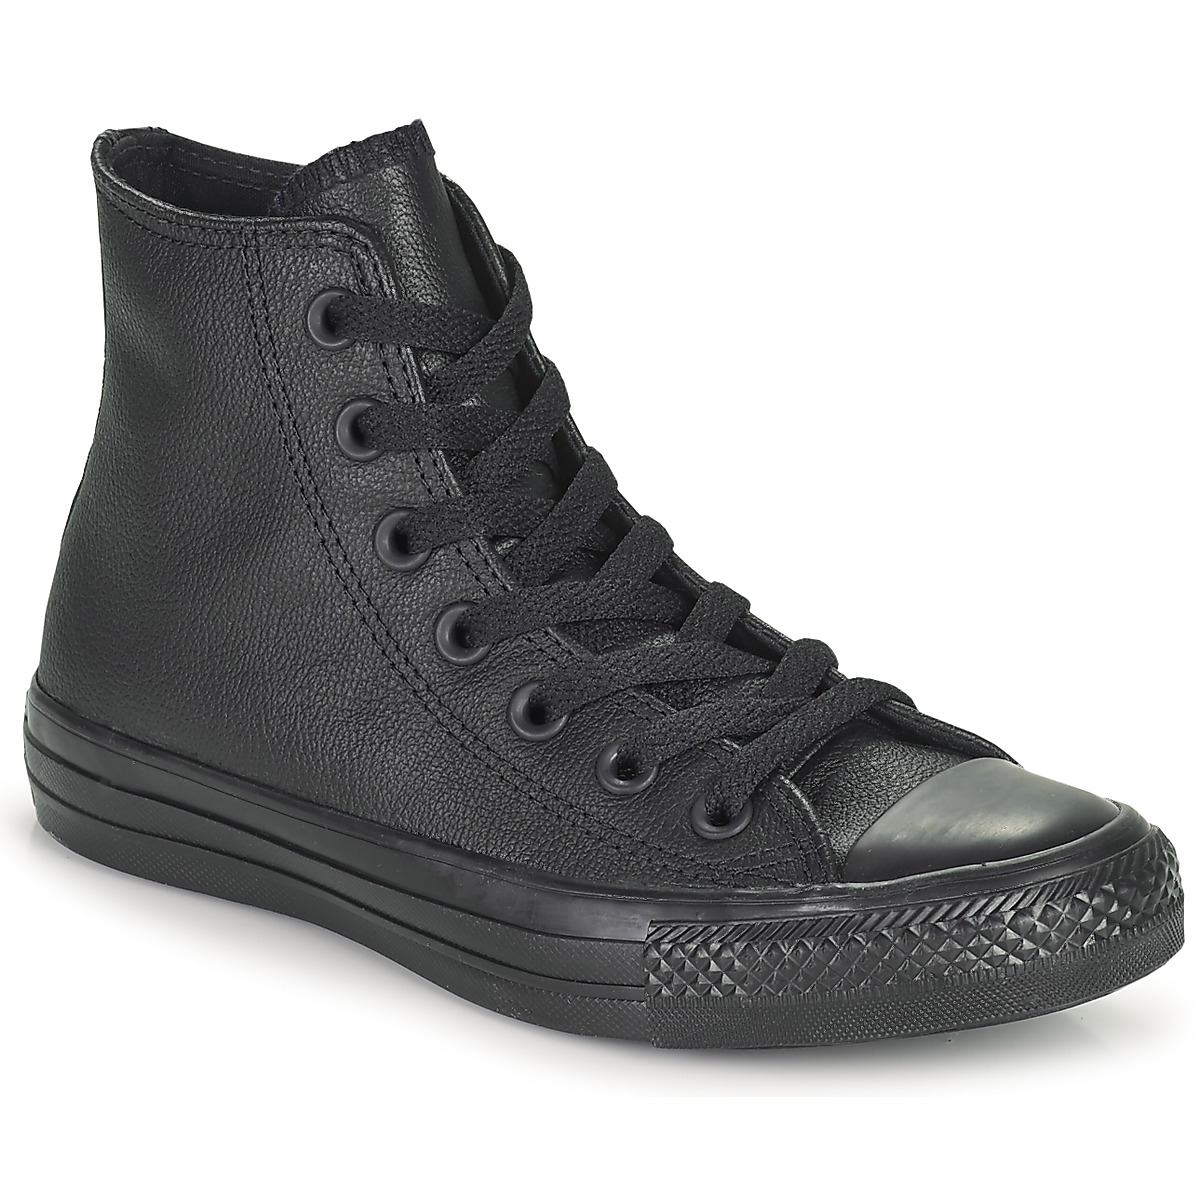 Converse CHUCK TAYLOR ALL STAR MONO HI Black